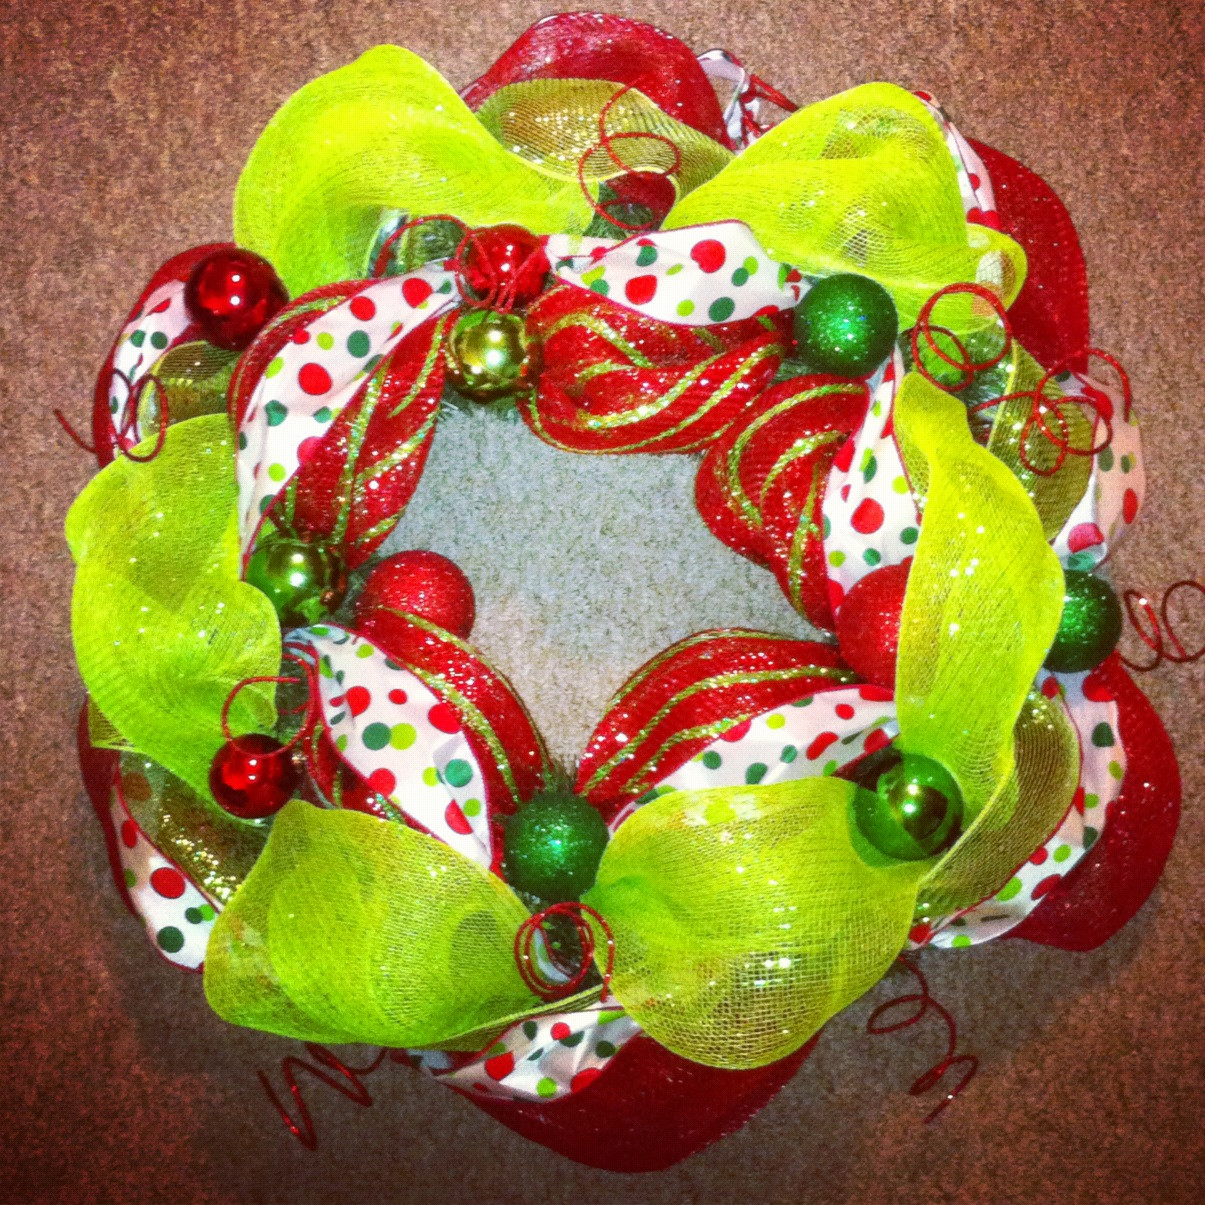 Best ideas about Mesh Wreaths DIY . Save or Pin Peace Love 2 Sisters DIY Mesh Wreath Now.